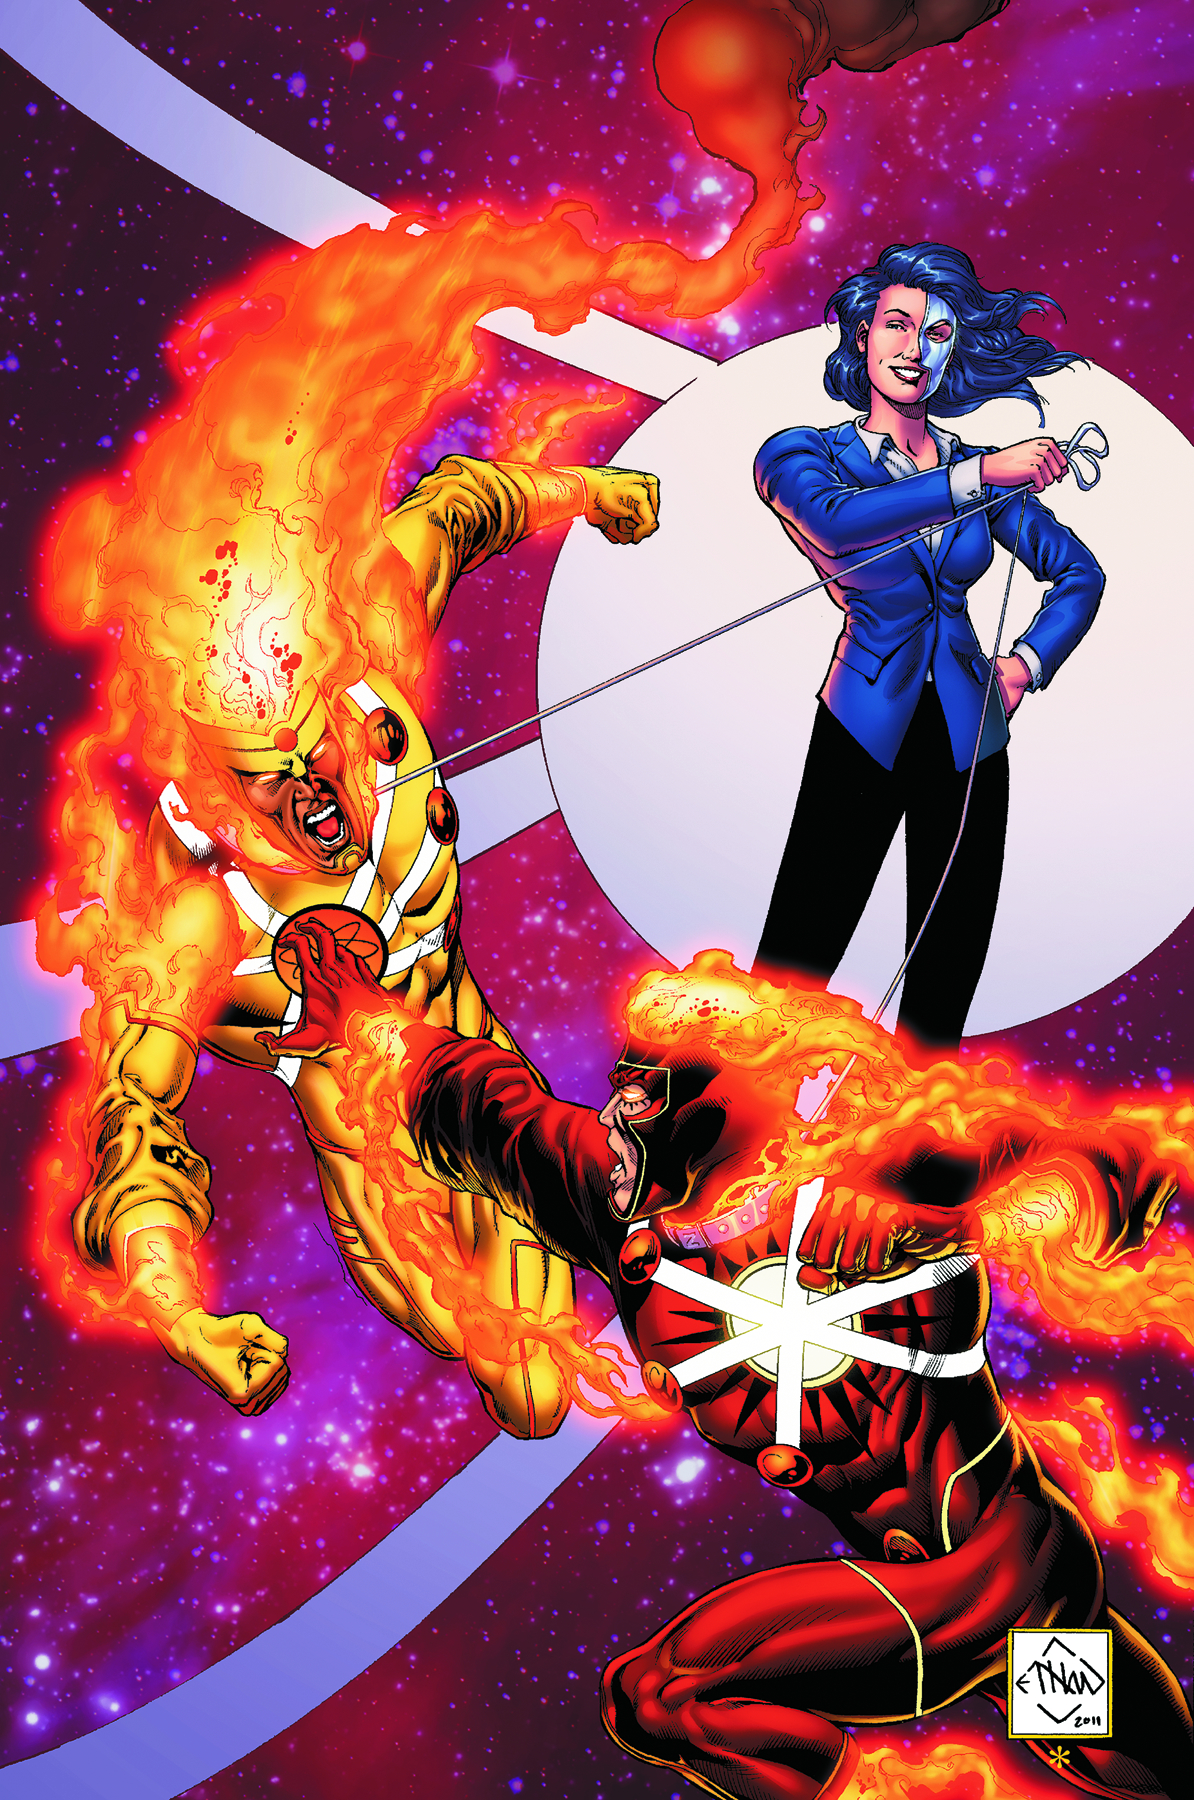 FURY OF FIRESTORM THE NUCLEAR MEN #5